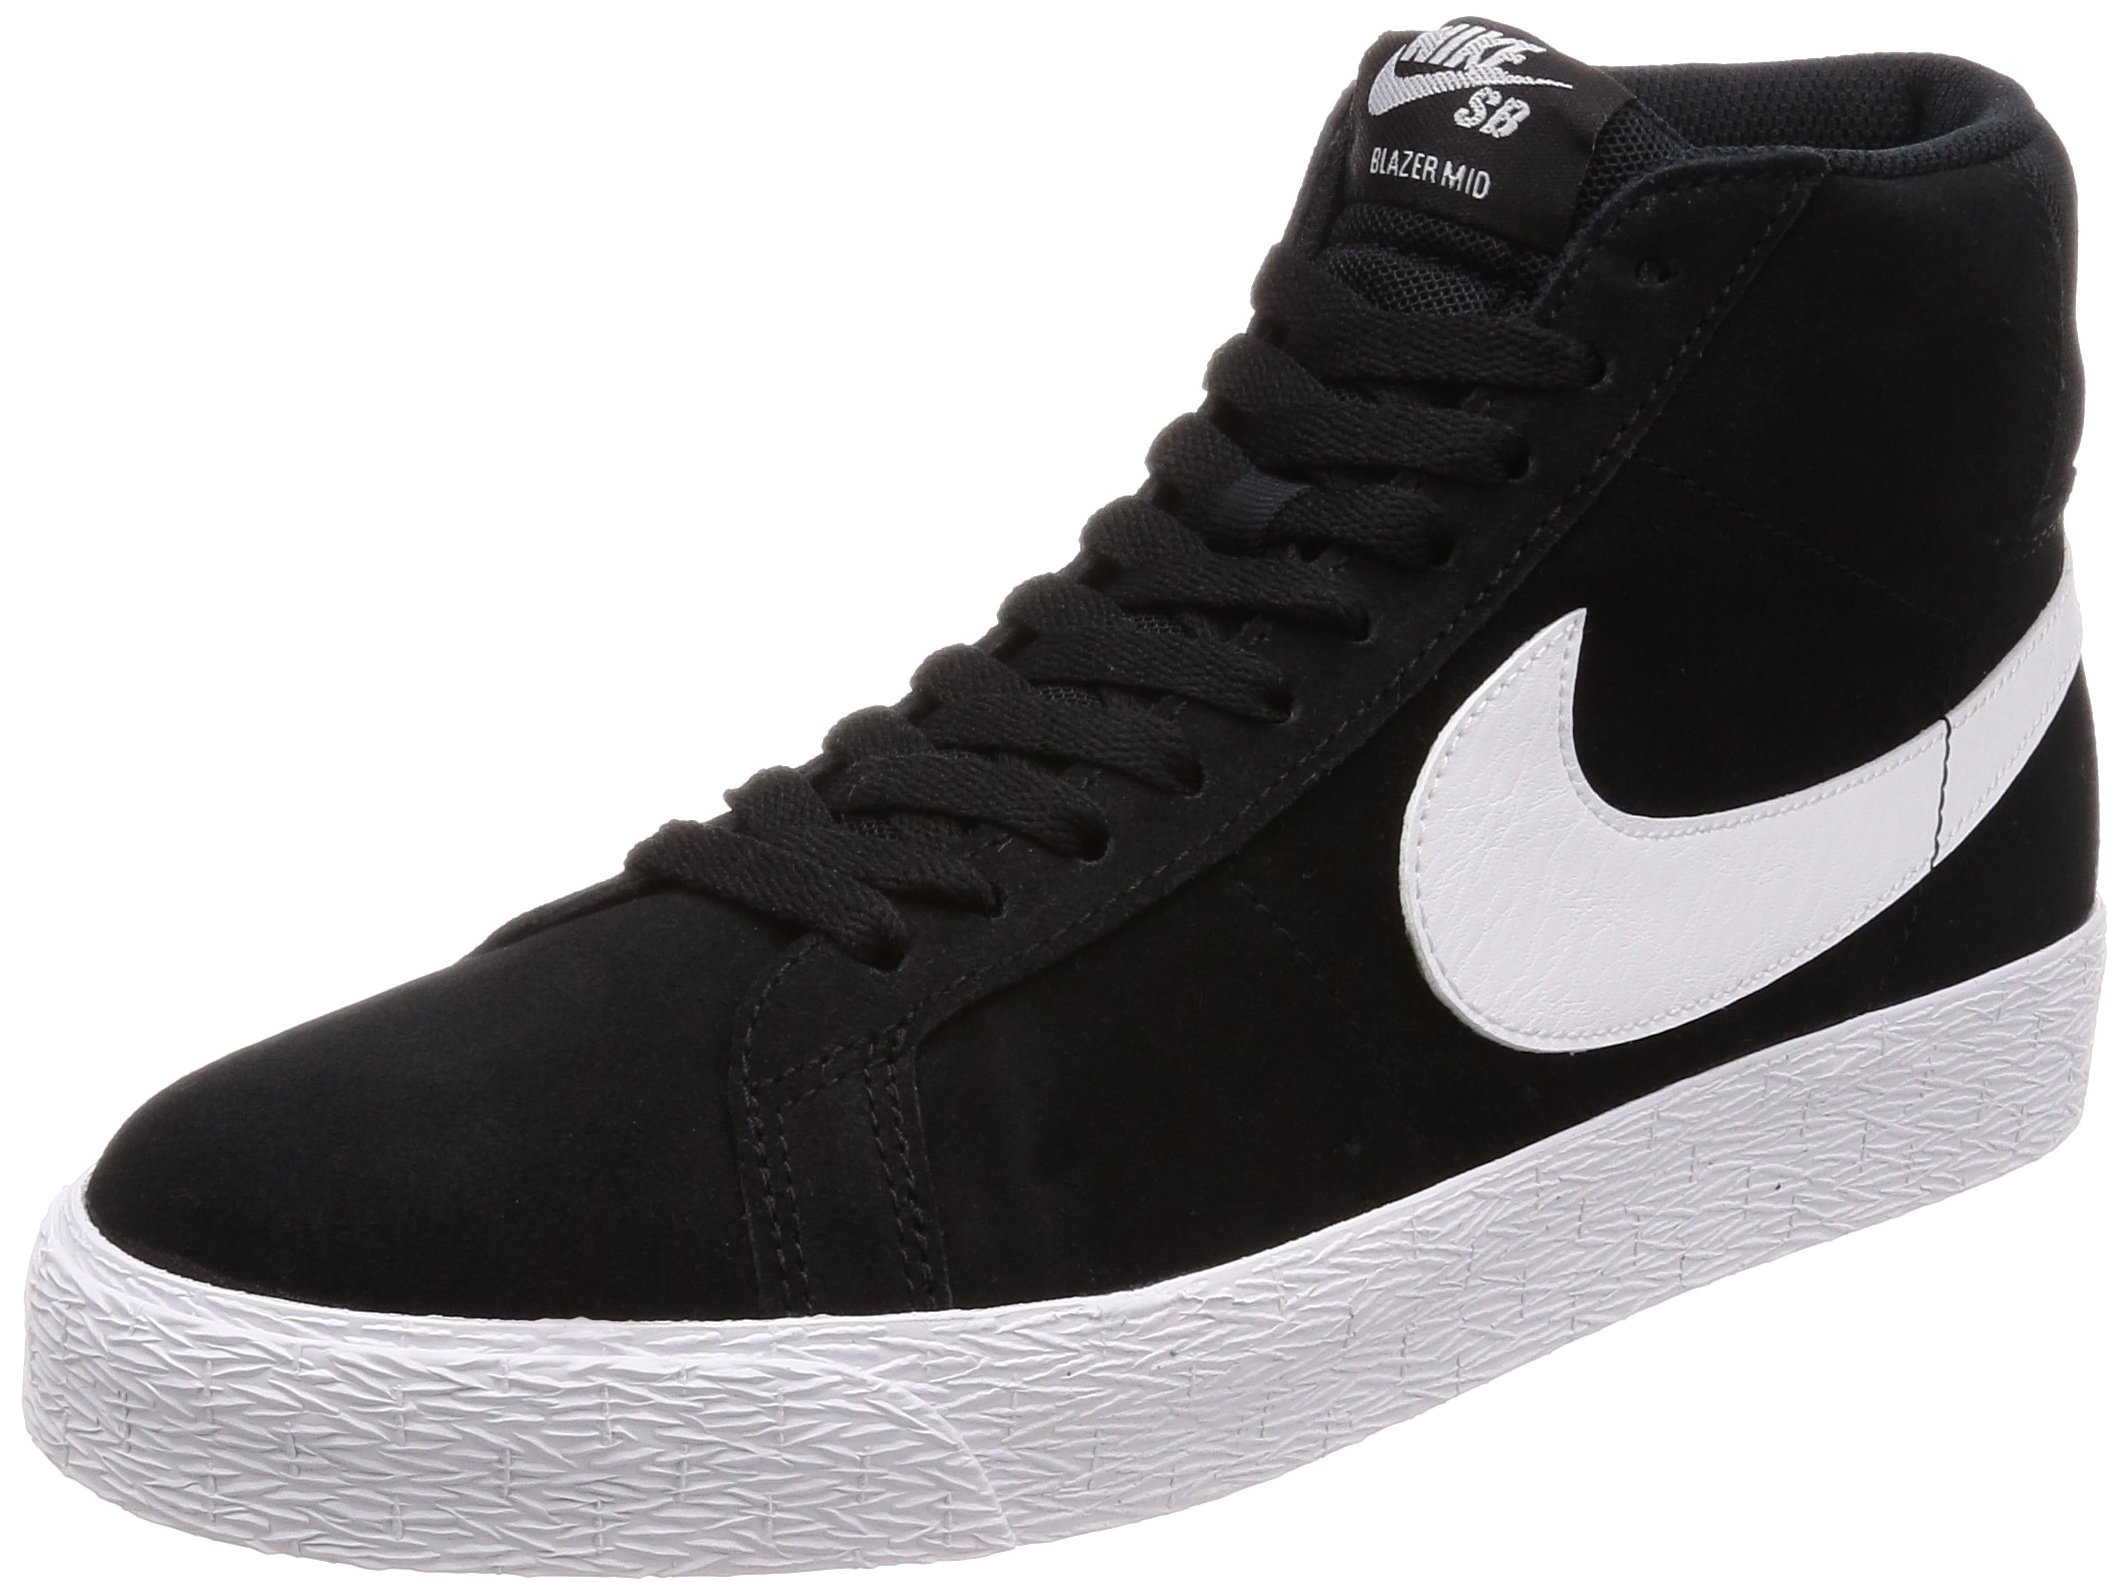 NIKE SB Zoom Blazer Mid Mens Fashion-Sneakers 864349-002_9.5 - Black/White-White-White